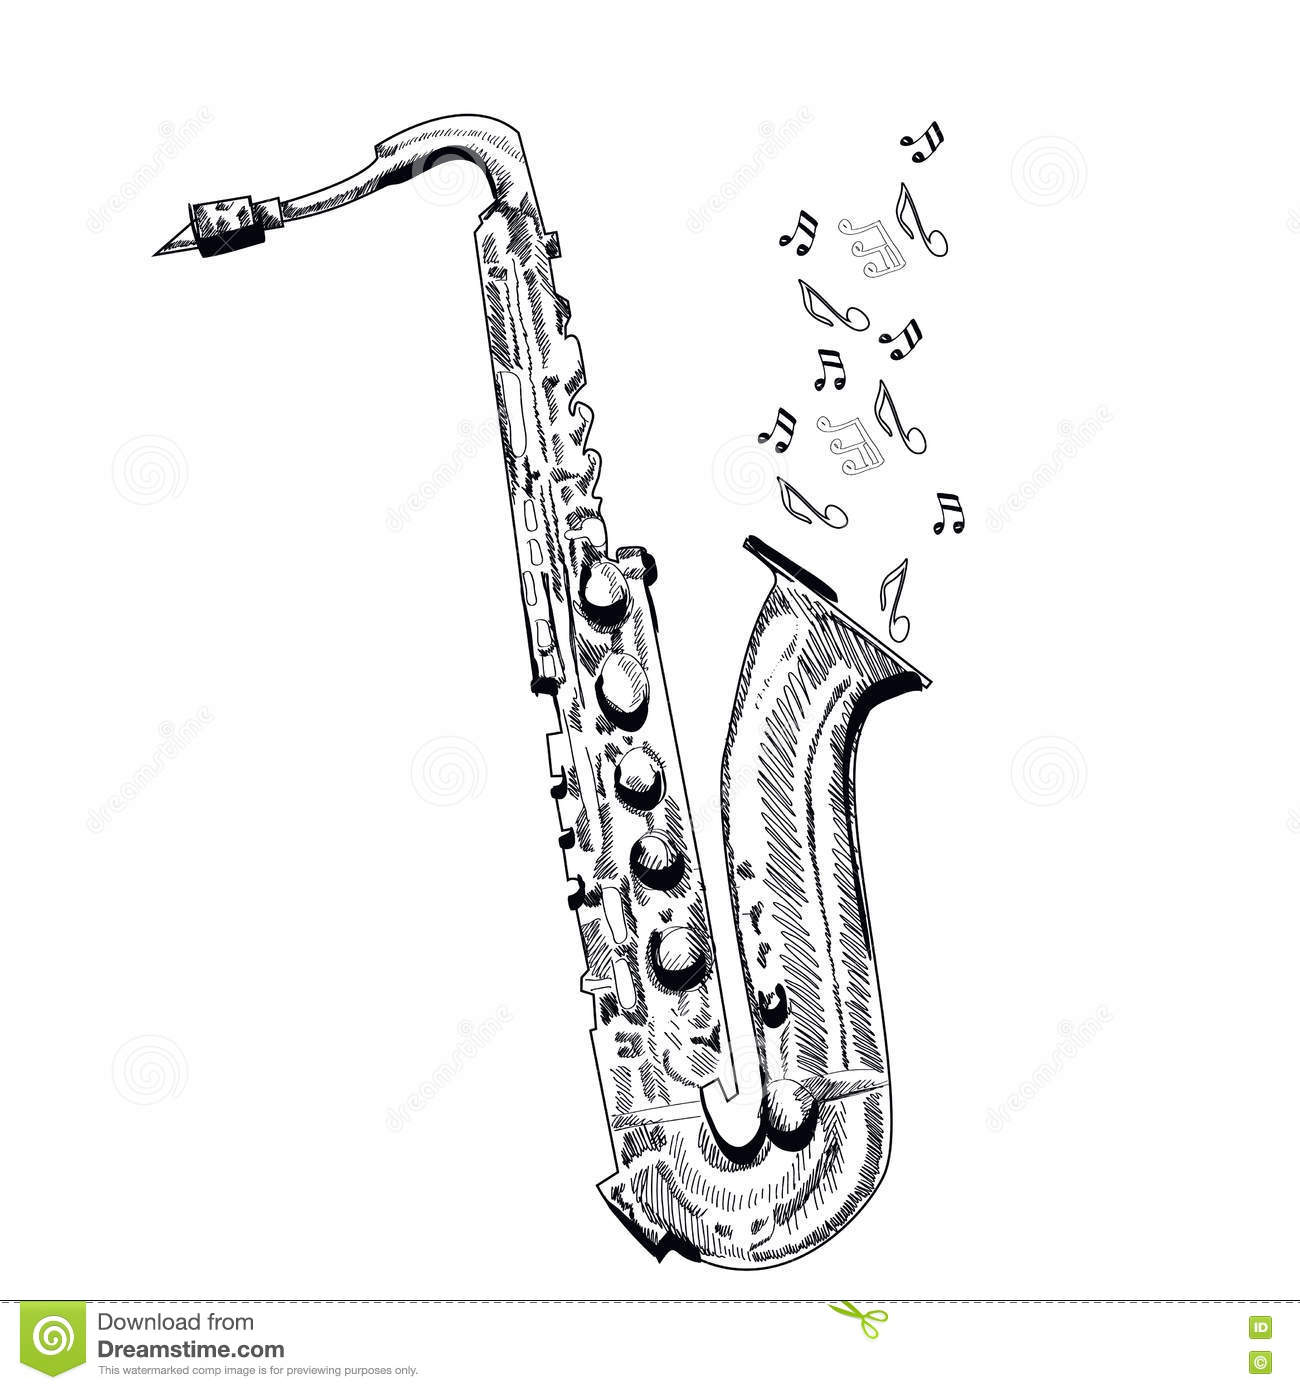 Tatouage Coquillage Dans Le Nuque besides Marceline Bubblegum 424707597 furthermore Draw Realistic Eye Wiht Charcoal also Helga G Pataki Hey Arnold Fan Art 695545815 as well Sketch Saxophone Musical Instrument. on realistic drawings of cartoons